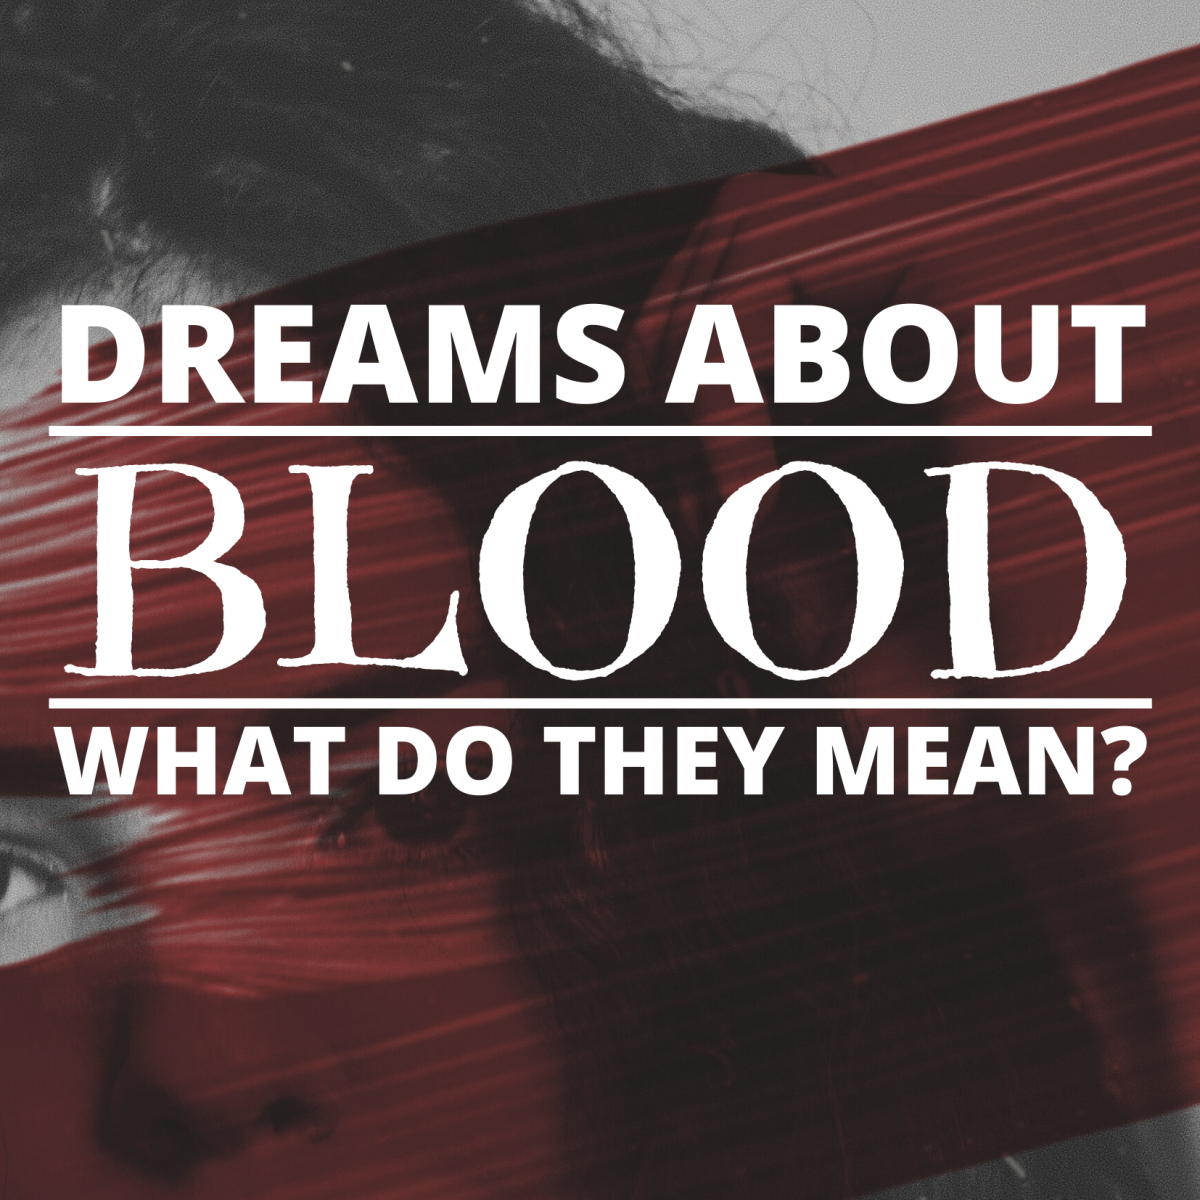 Blood in Dreams: What Do Dreams About Blood Mean?